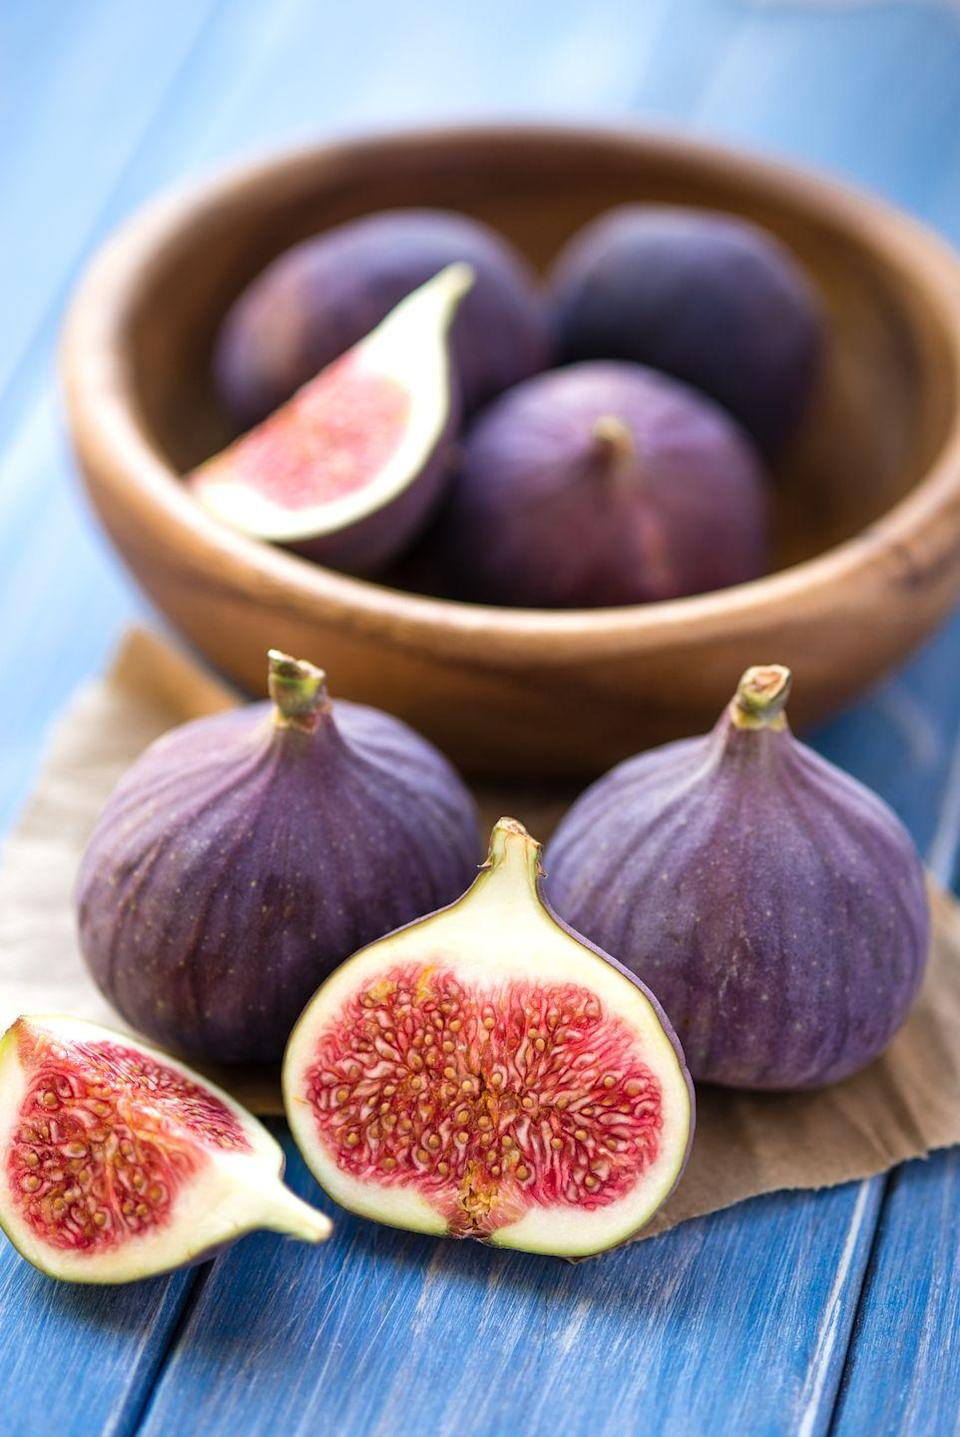 """<p>""""Figs pack potassium, magnesium, calcium, and iron,"""" says <a href=""""https://www.goodhousekeeping.com/author/11834/jaclyn-london-ms-rd-cdn/"""" rel=""""nofollow noopener"""" target=""""_blank"""" data-ylk=""""slk:Jaclyn London, MS, RD, CDN"""" class=""""link rapid-noclick-resp"""">Jaclyn London, MS, RD, CDN</a>. """"These minerals help with blood flow and muscle contraction, which are key for falling asleep."""" Besides crushing your dessert craving, each fig also packs some additional fiber that'll keep you full.</p>"""